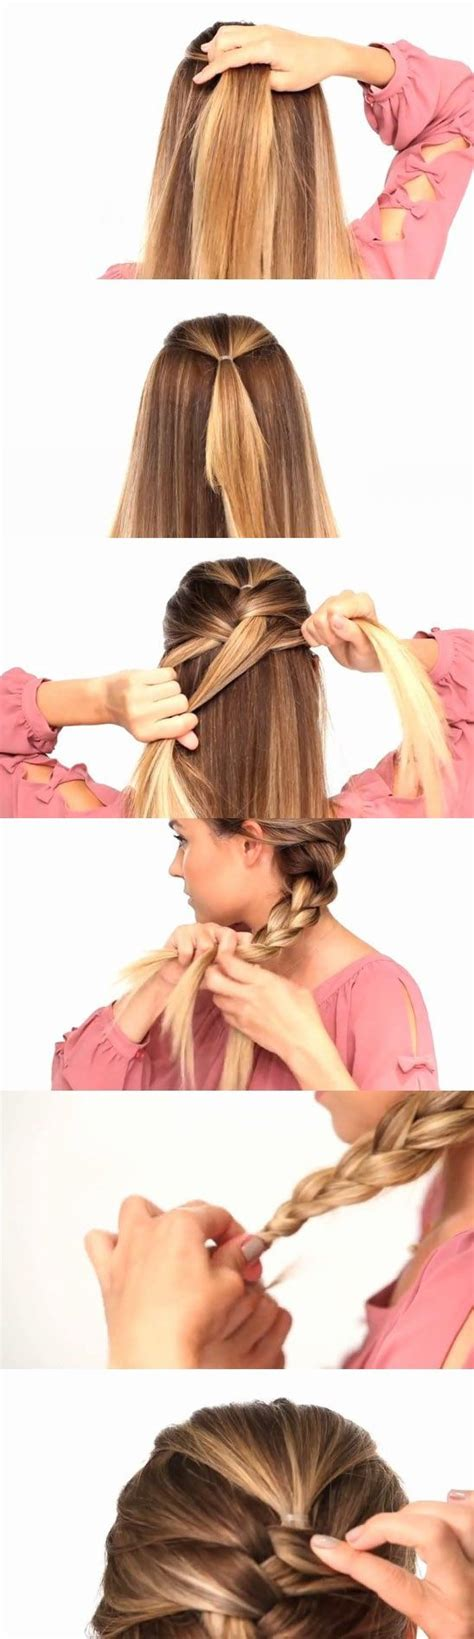 how to french braid your own bangs the easy way easy way to french braid your own hair hair do s for